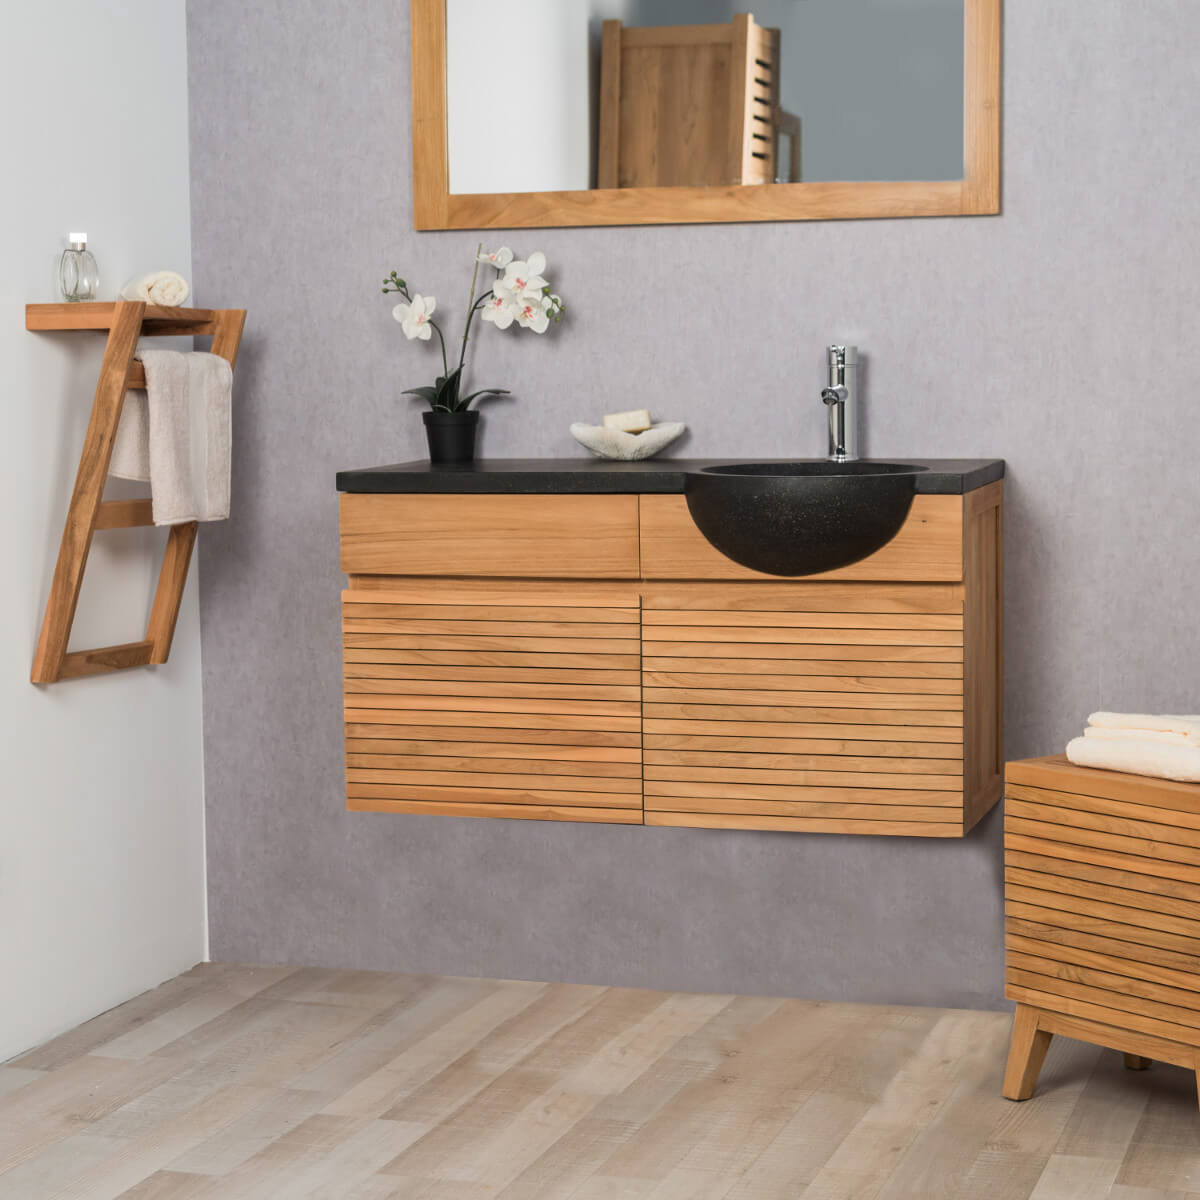 Meuble sous vasque simple vasque suspendu en bois teck for Meuble de salle de bain simple vasque